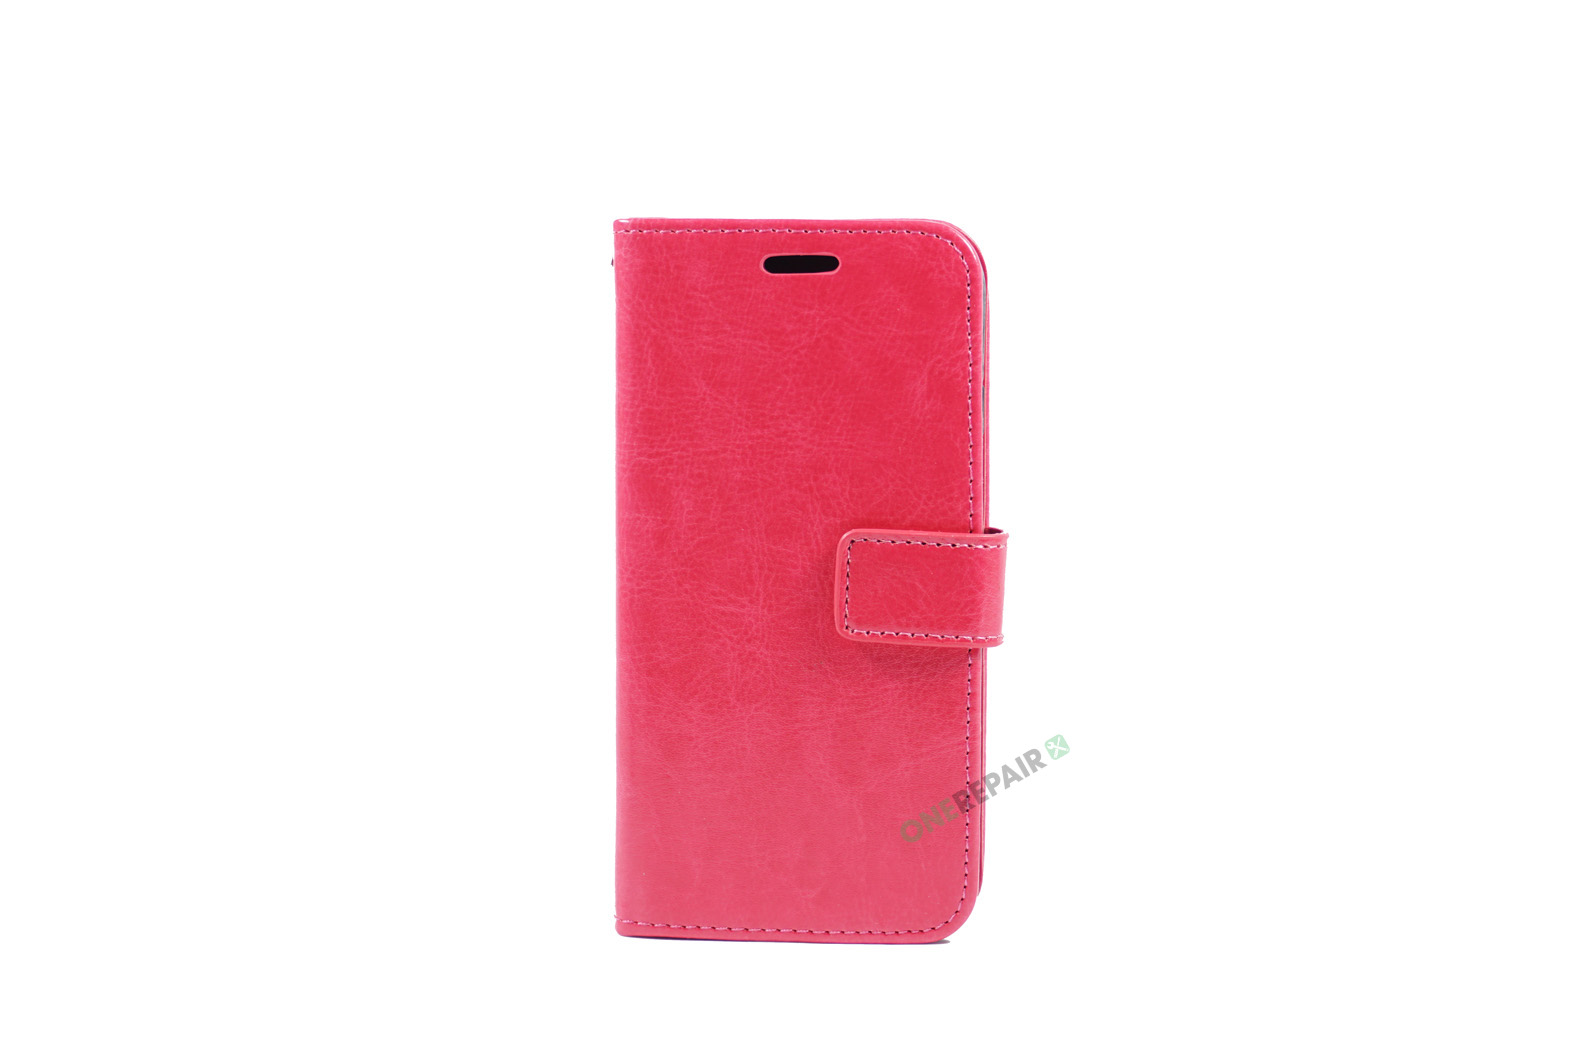 351834_iPhone_7_8_Flipcover_Classic_Cover_Lyseroed_Pink_OneRepair_WM_00001